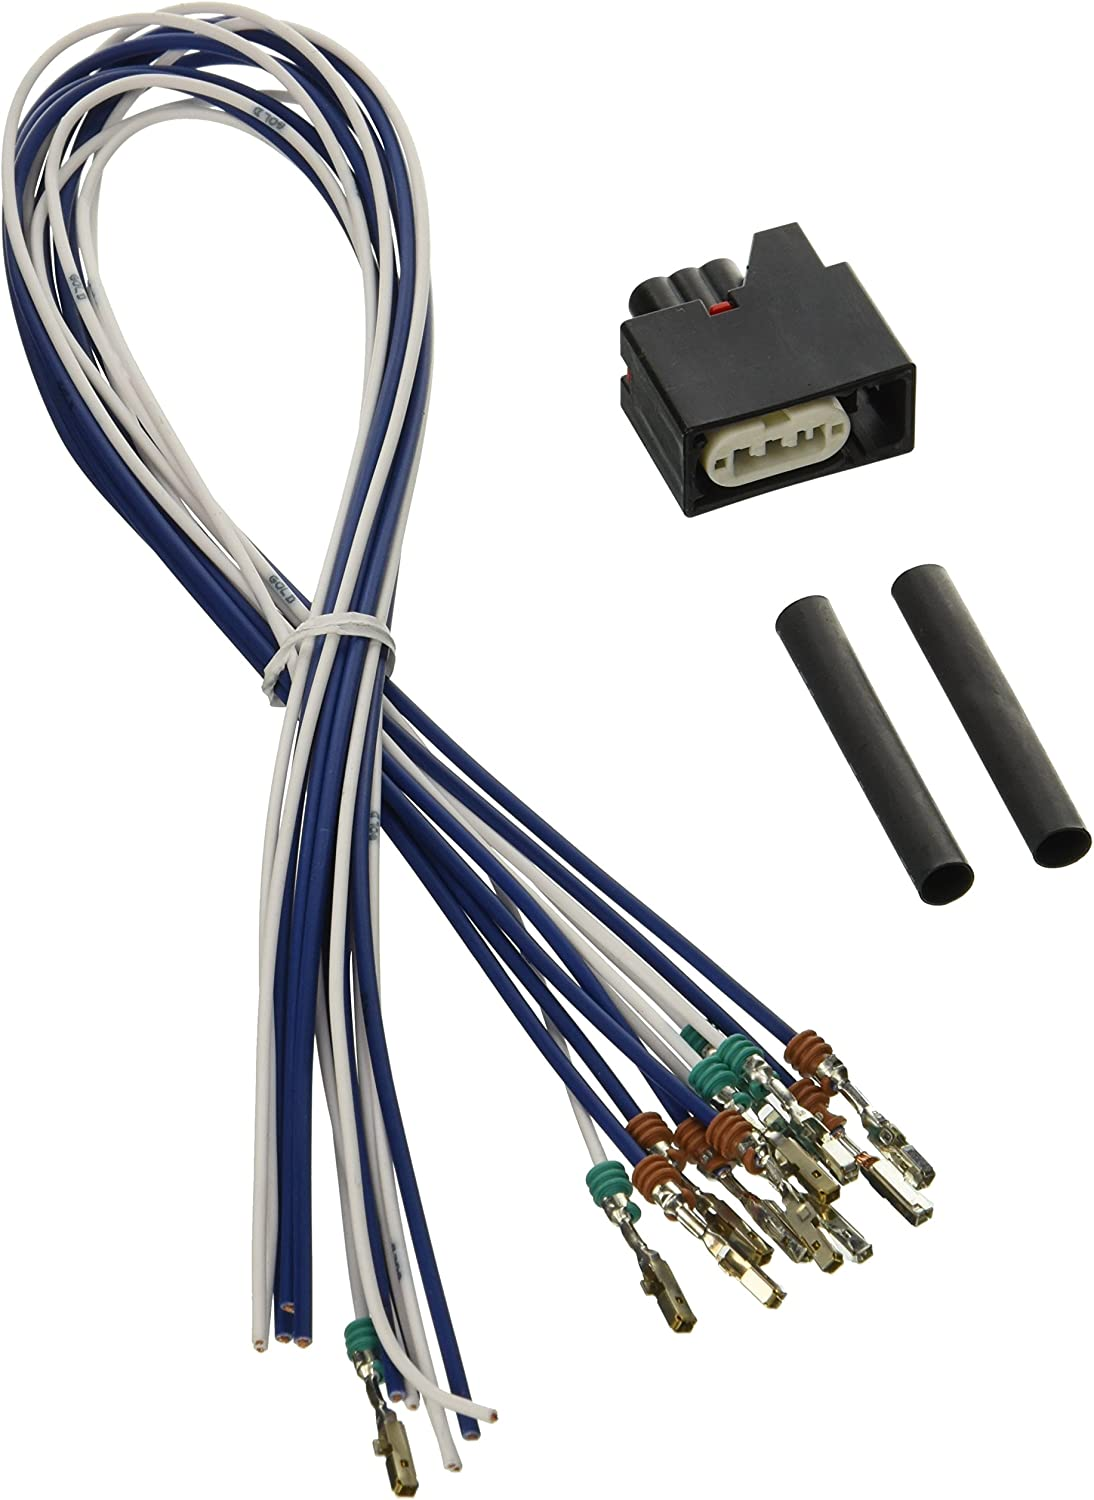 Genuine Chrysler 68065016AB 3-Way Wiring Shipping Max 44% OFF included